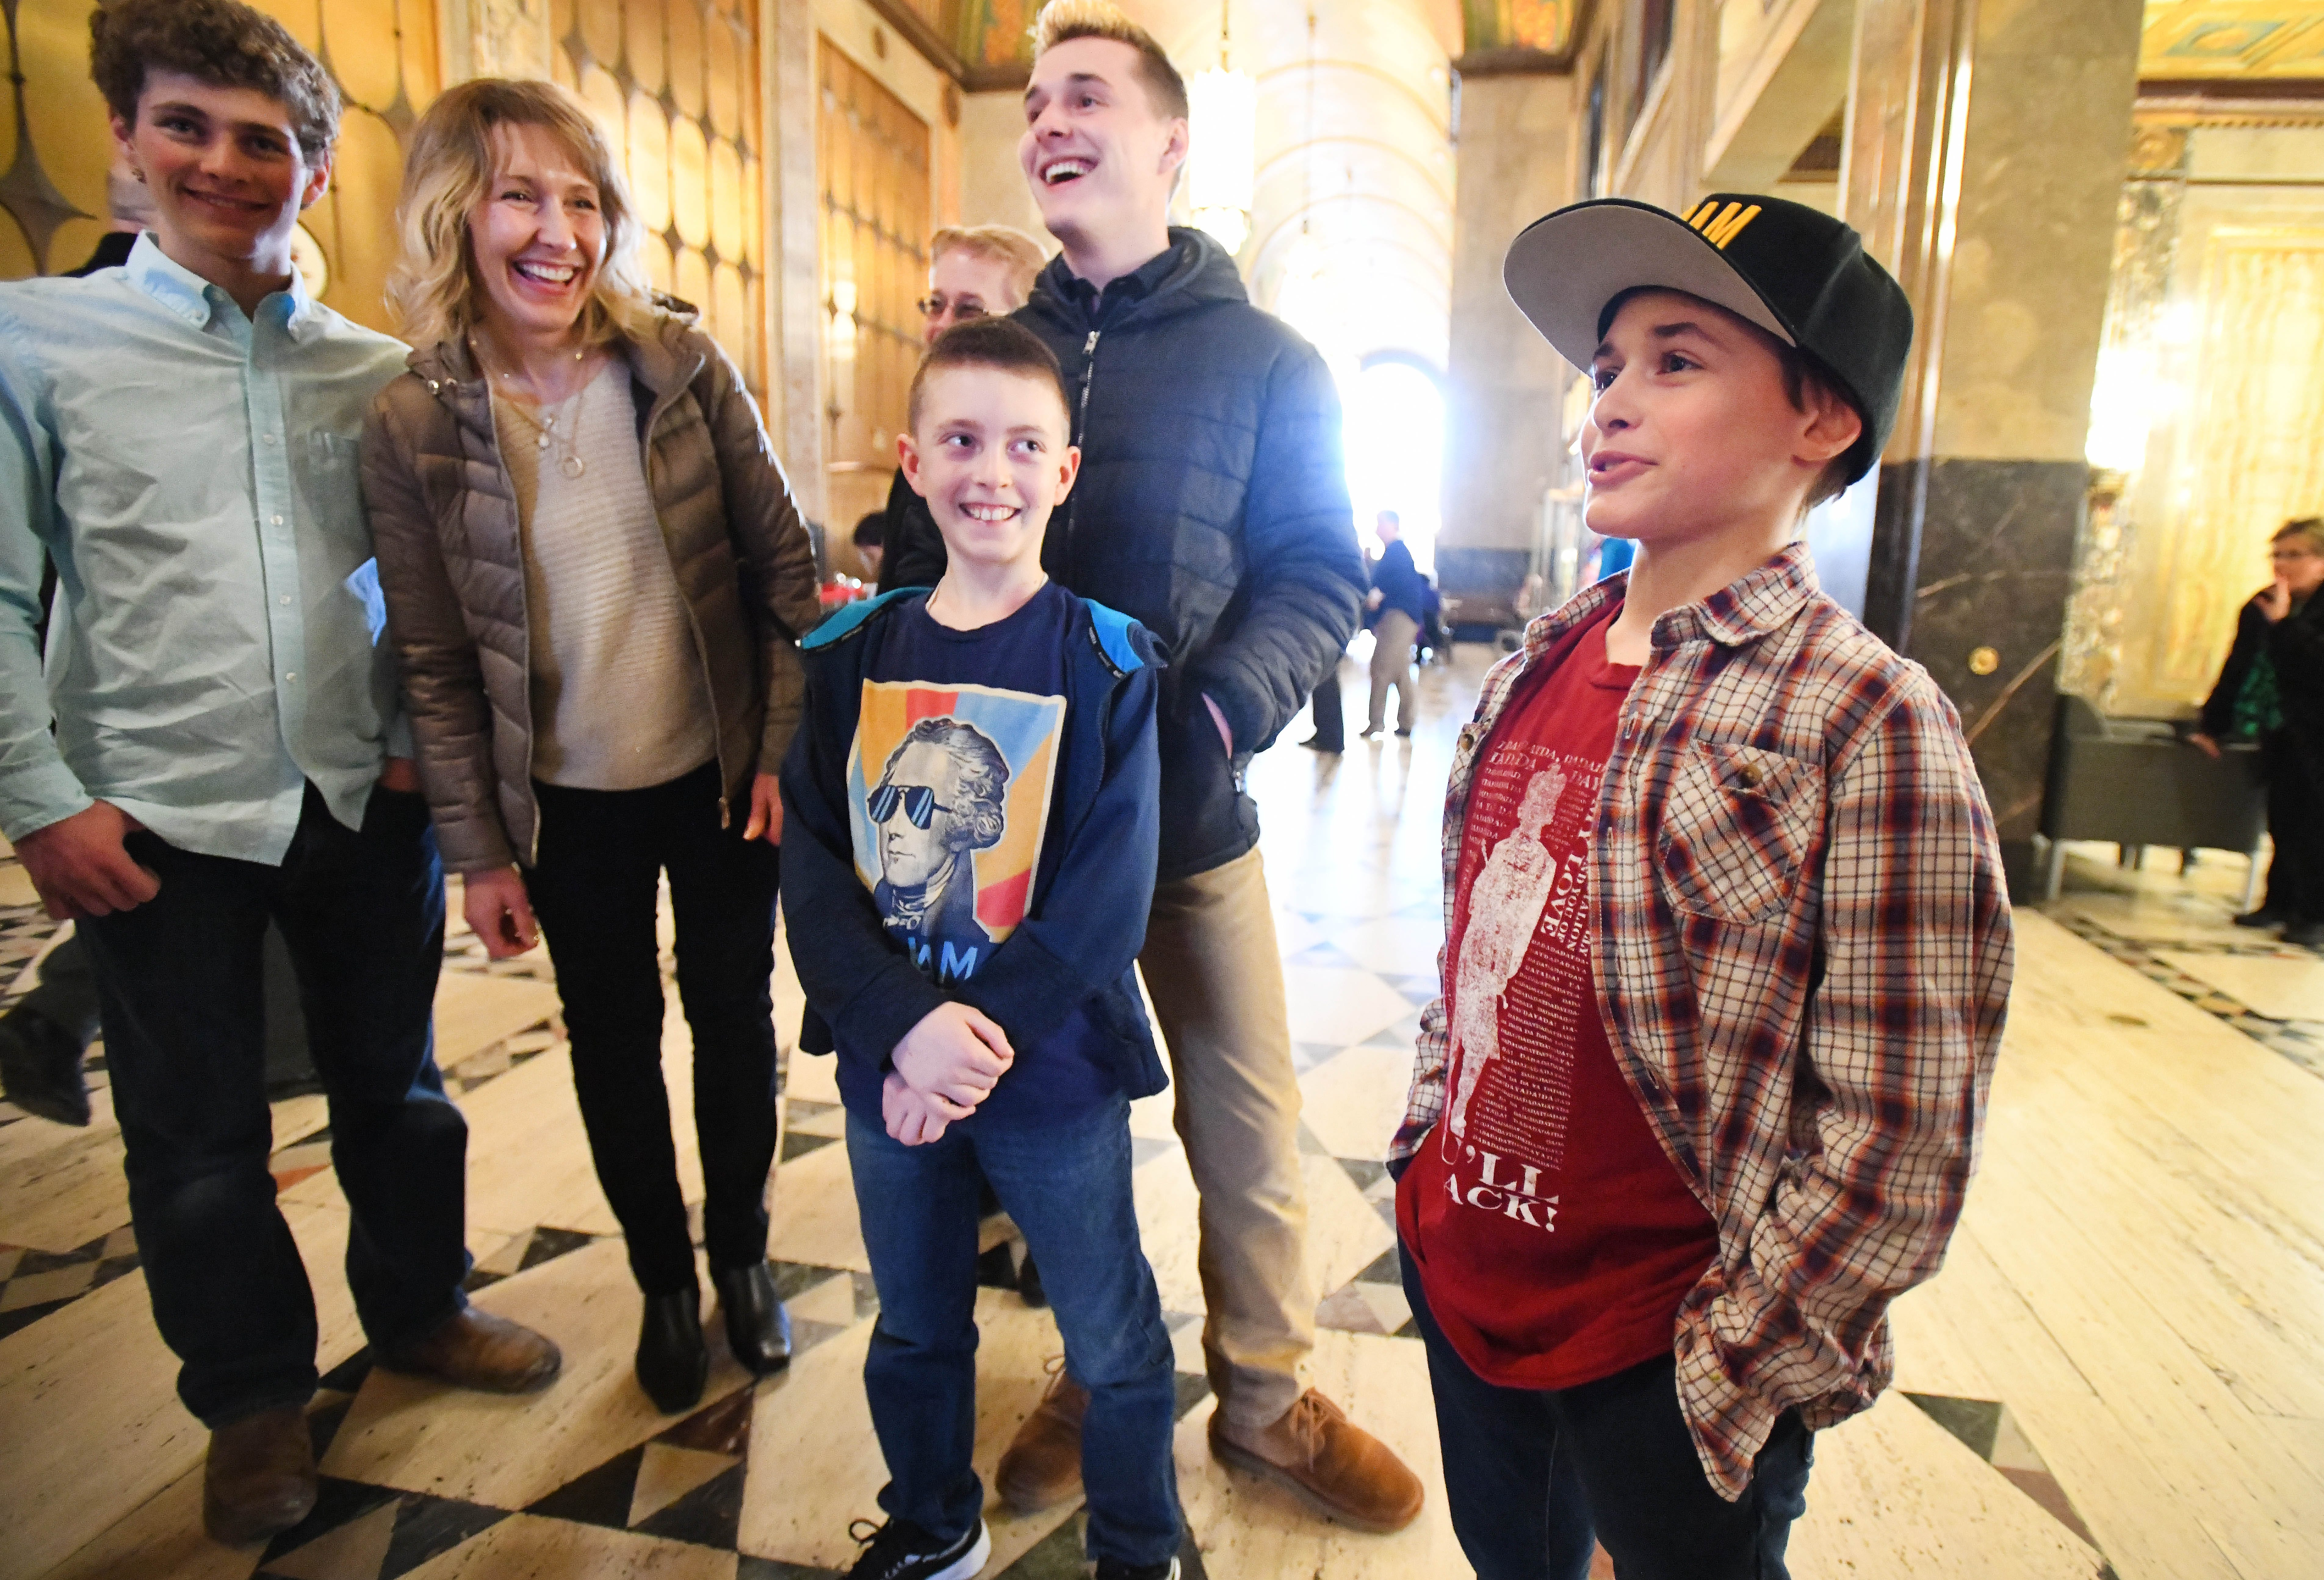 Wearing 'Hamilton' T-shirts, Ben Ruprecht, 10 and Adam Michaels, 12, who had a Hamilton themed birthday party, arrive with family and friends for the opening of the musical 'Hamilton' at the Fisher Theatre in Detroit, Michigan on March 12, 2019.